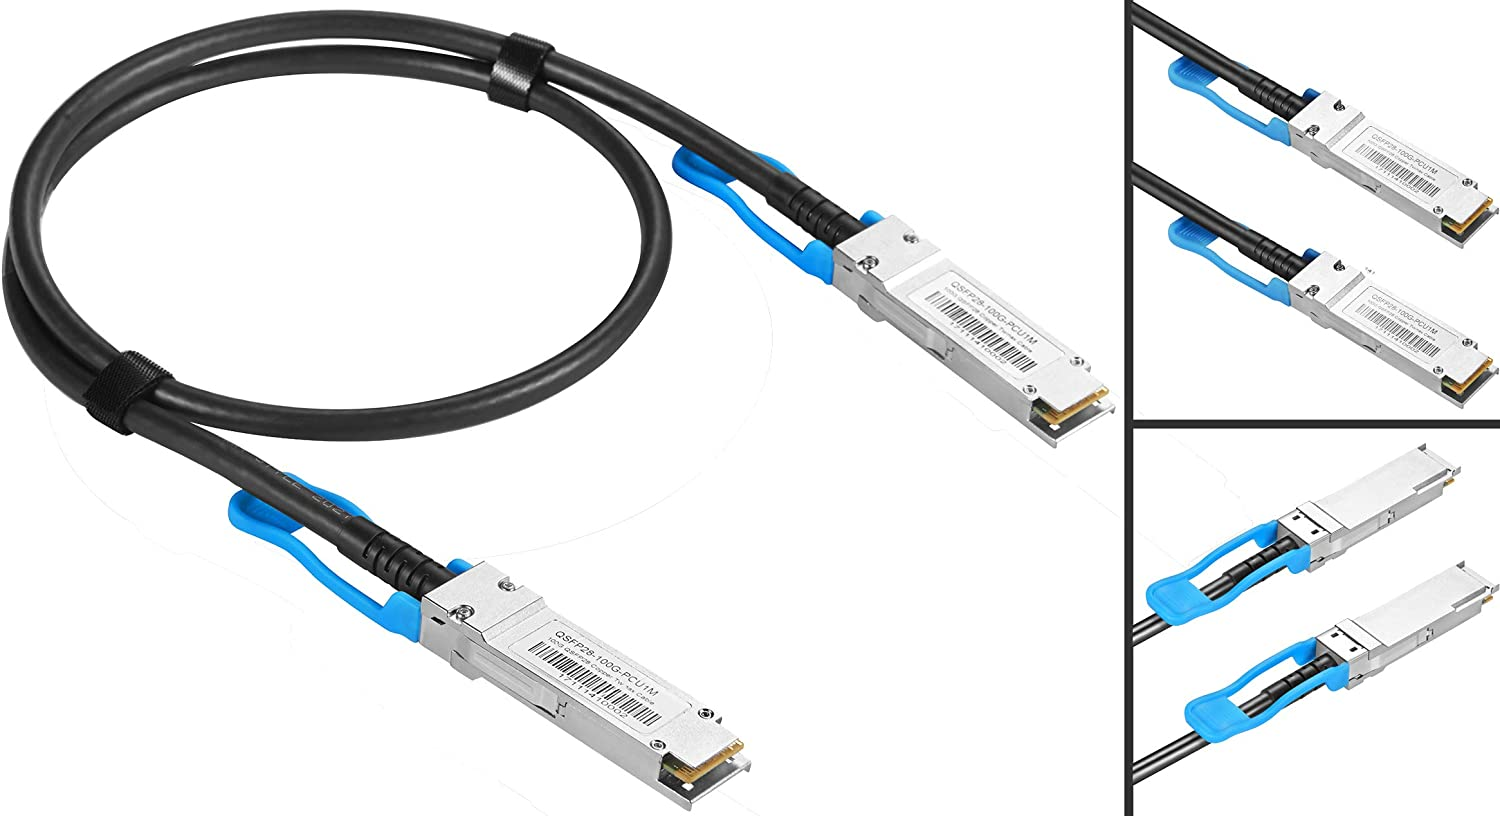 5-Meter 100GBASE-CR4 QSFP28 to QSFP28 Passive Direct Attach Twinax Copper Cables Assemblies for Ubiquiti 100G Ethernet Switches